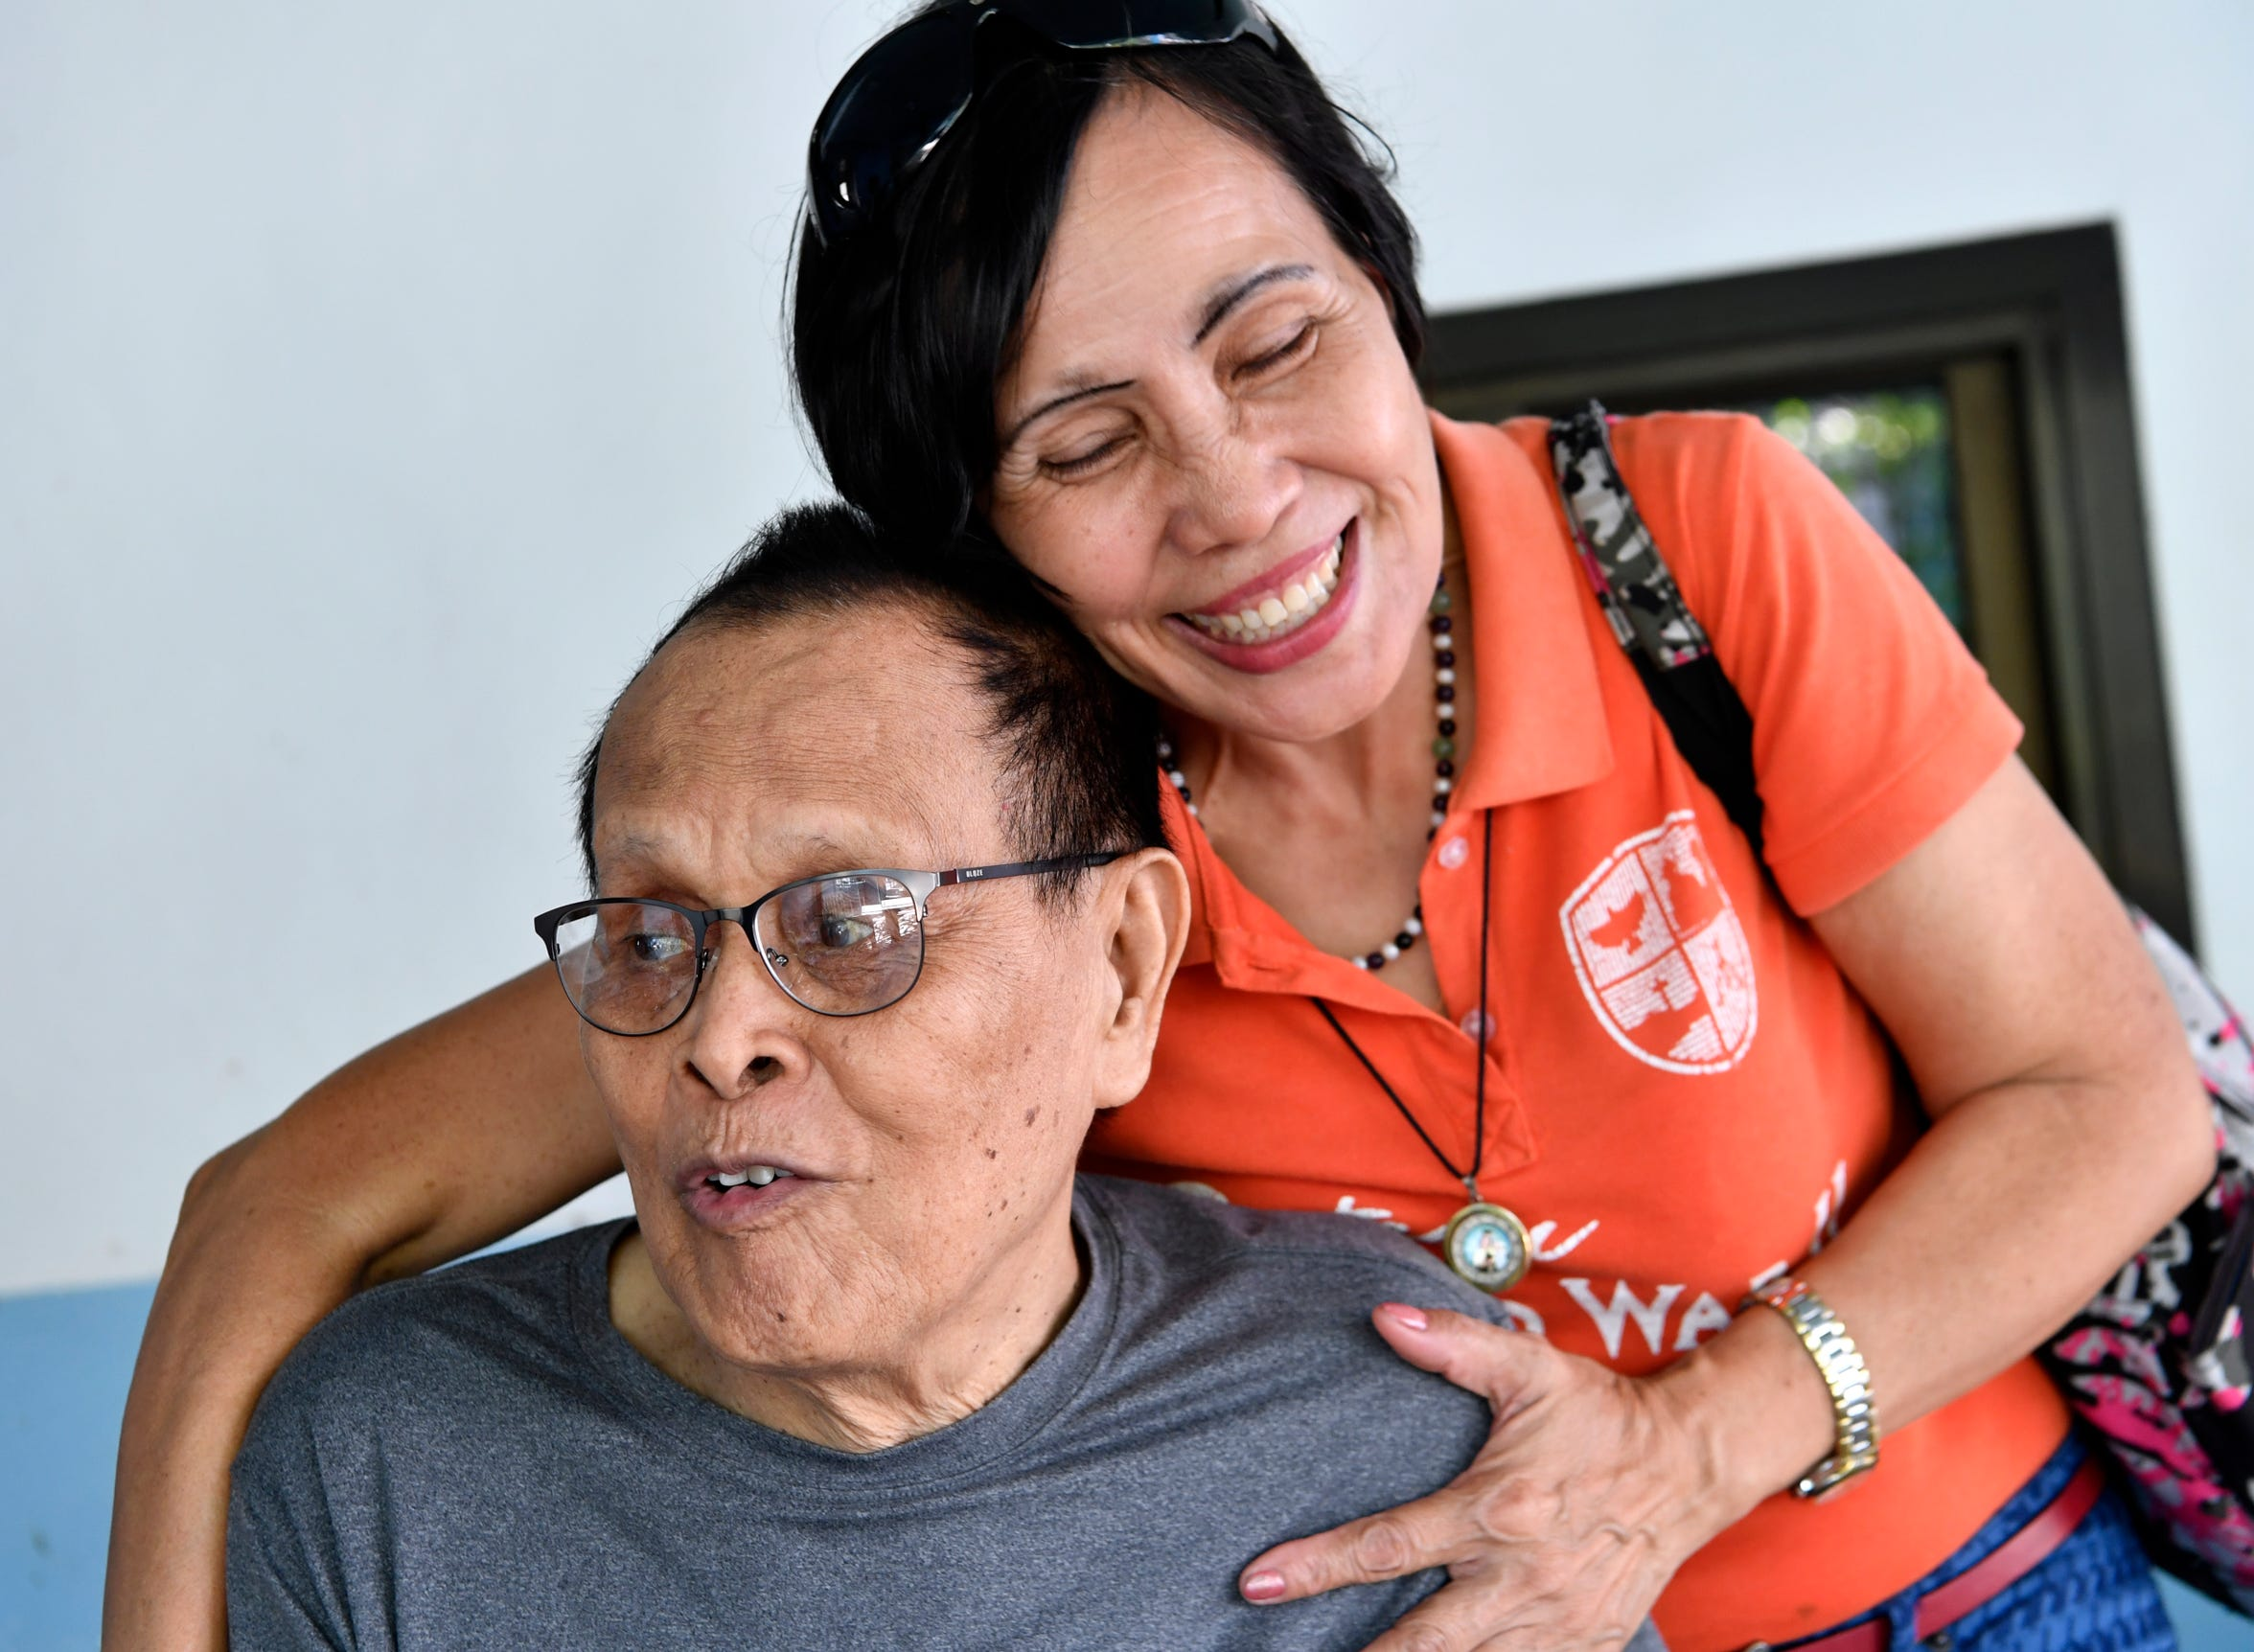 Katherine Mejia gives Nestor Ceniza a hug at his home in Balanga City, Philippines, on Oct. 21, 2019. Mejia is the key holder, or director, of the Bataan World War II Museum, Ceniza is a survivor of the concentration camp at Camp O'Donnell during the Japanese occupation of the Philippines.